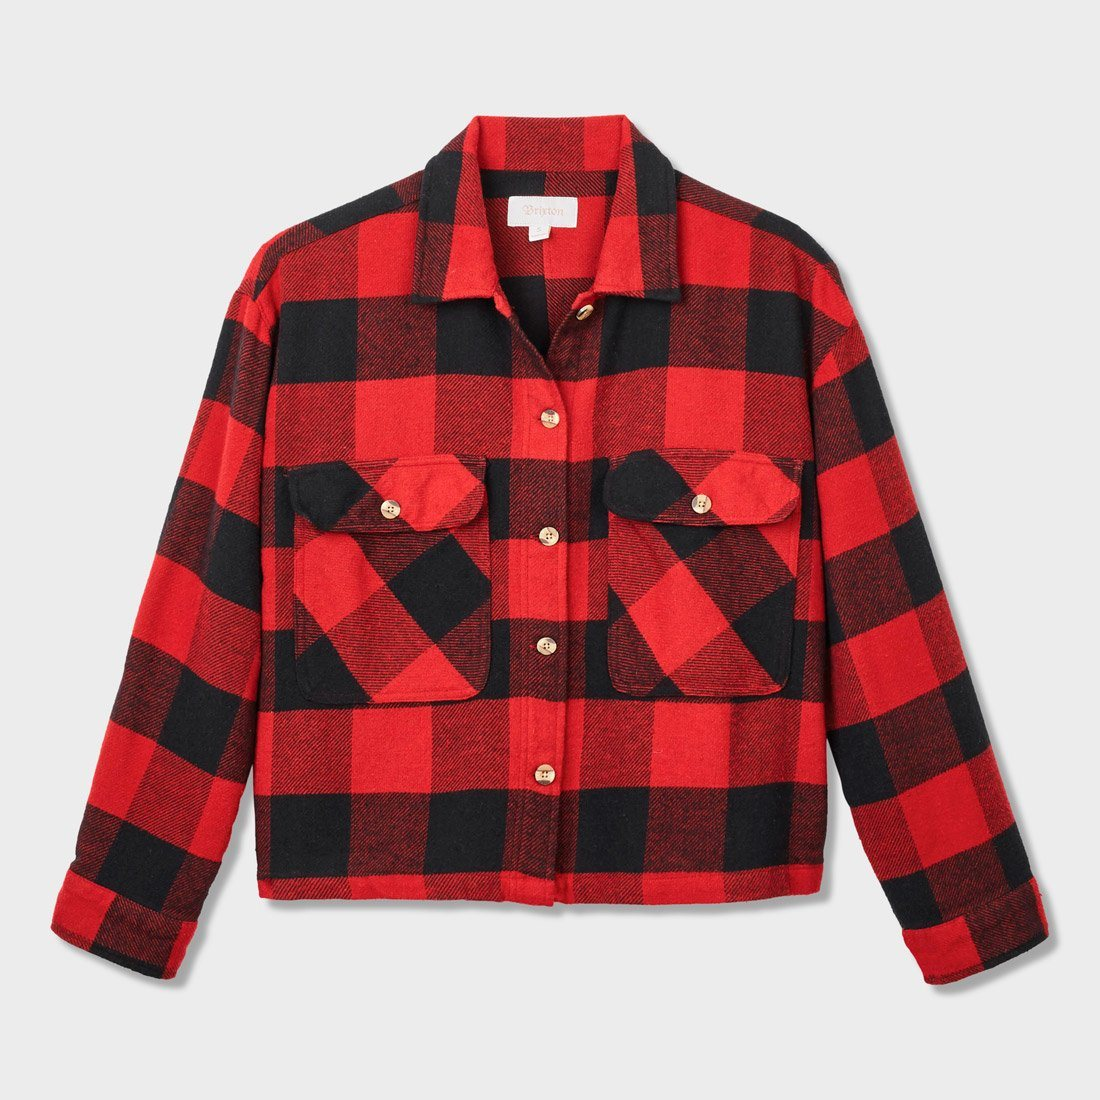 Brixton Women's Astoria Flannel Cardinal